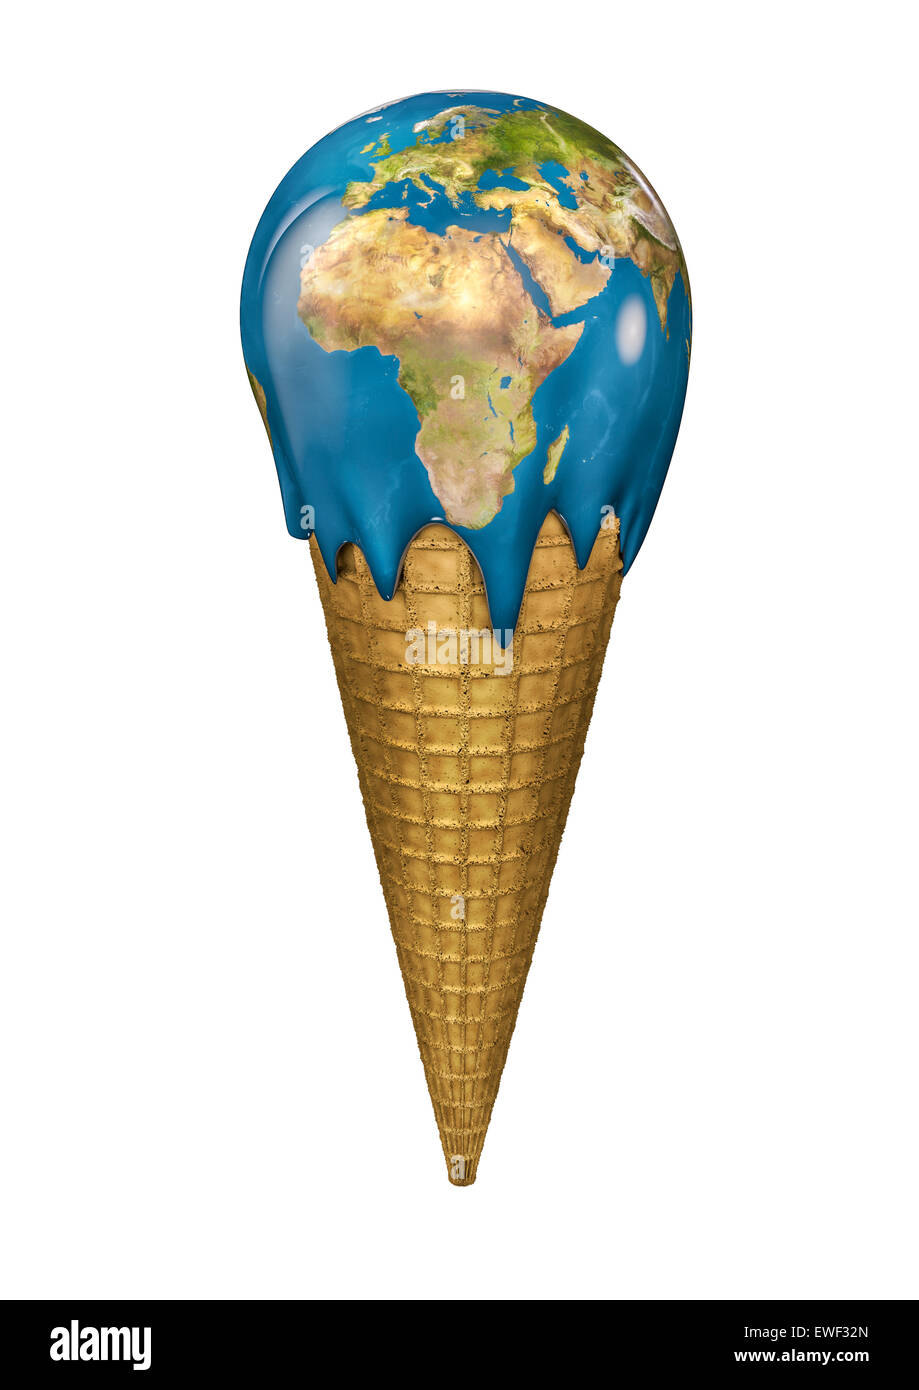 3D render of Earth ice cream cone Photo Stock